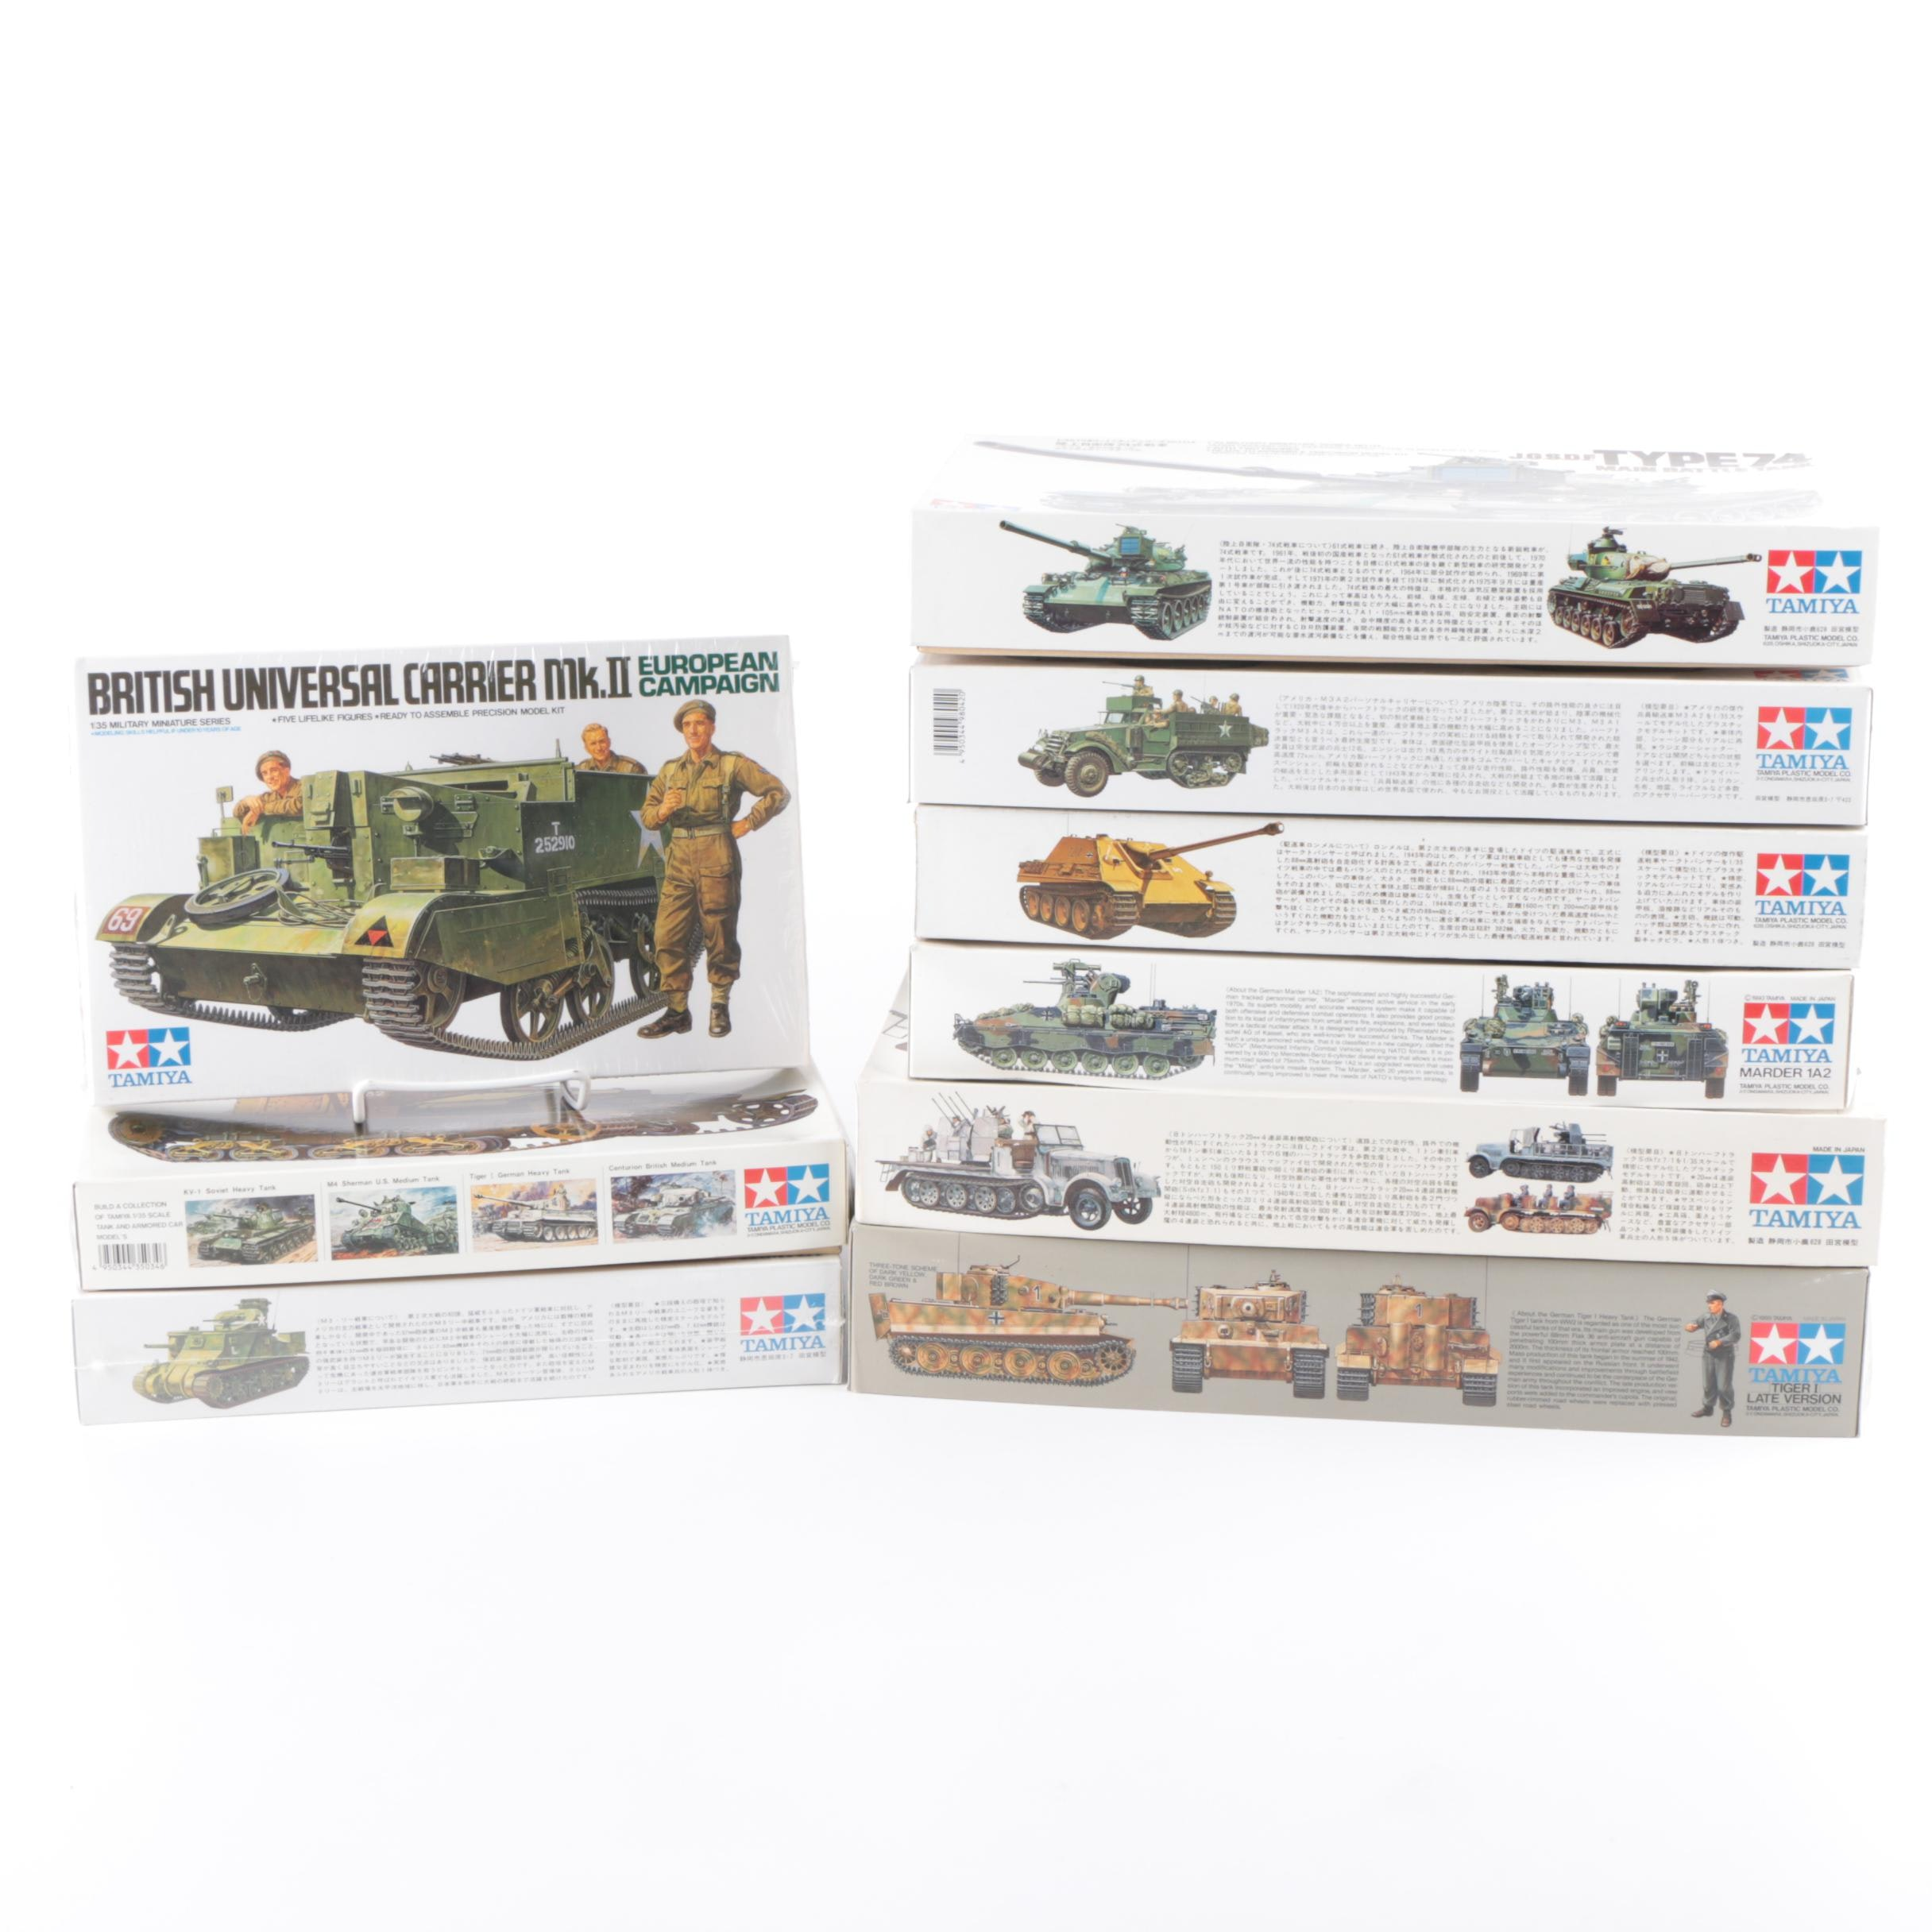 Tamiya Military Vehicle Model Kits